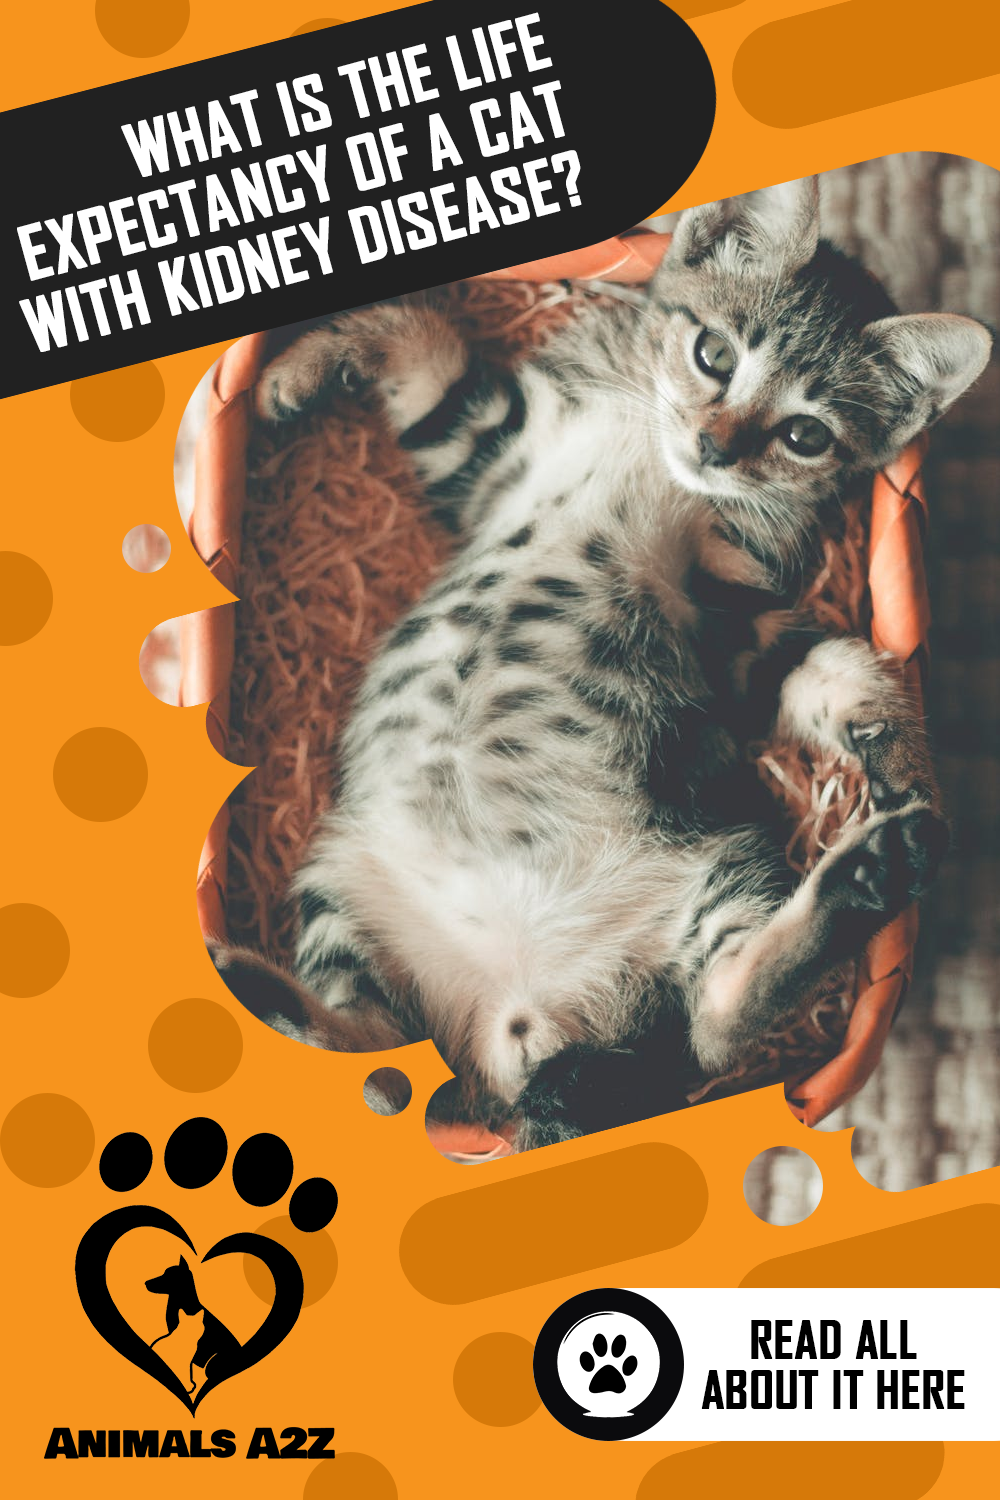 What Is the Life Expectancy of a Cat with Kidney Disease